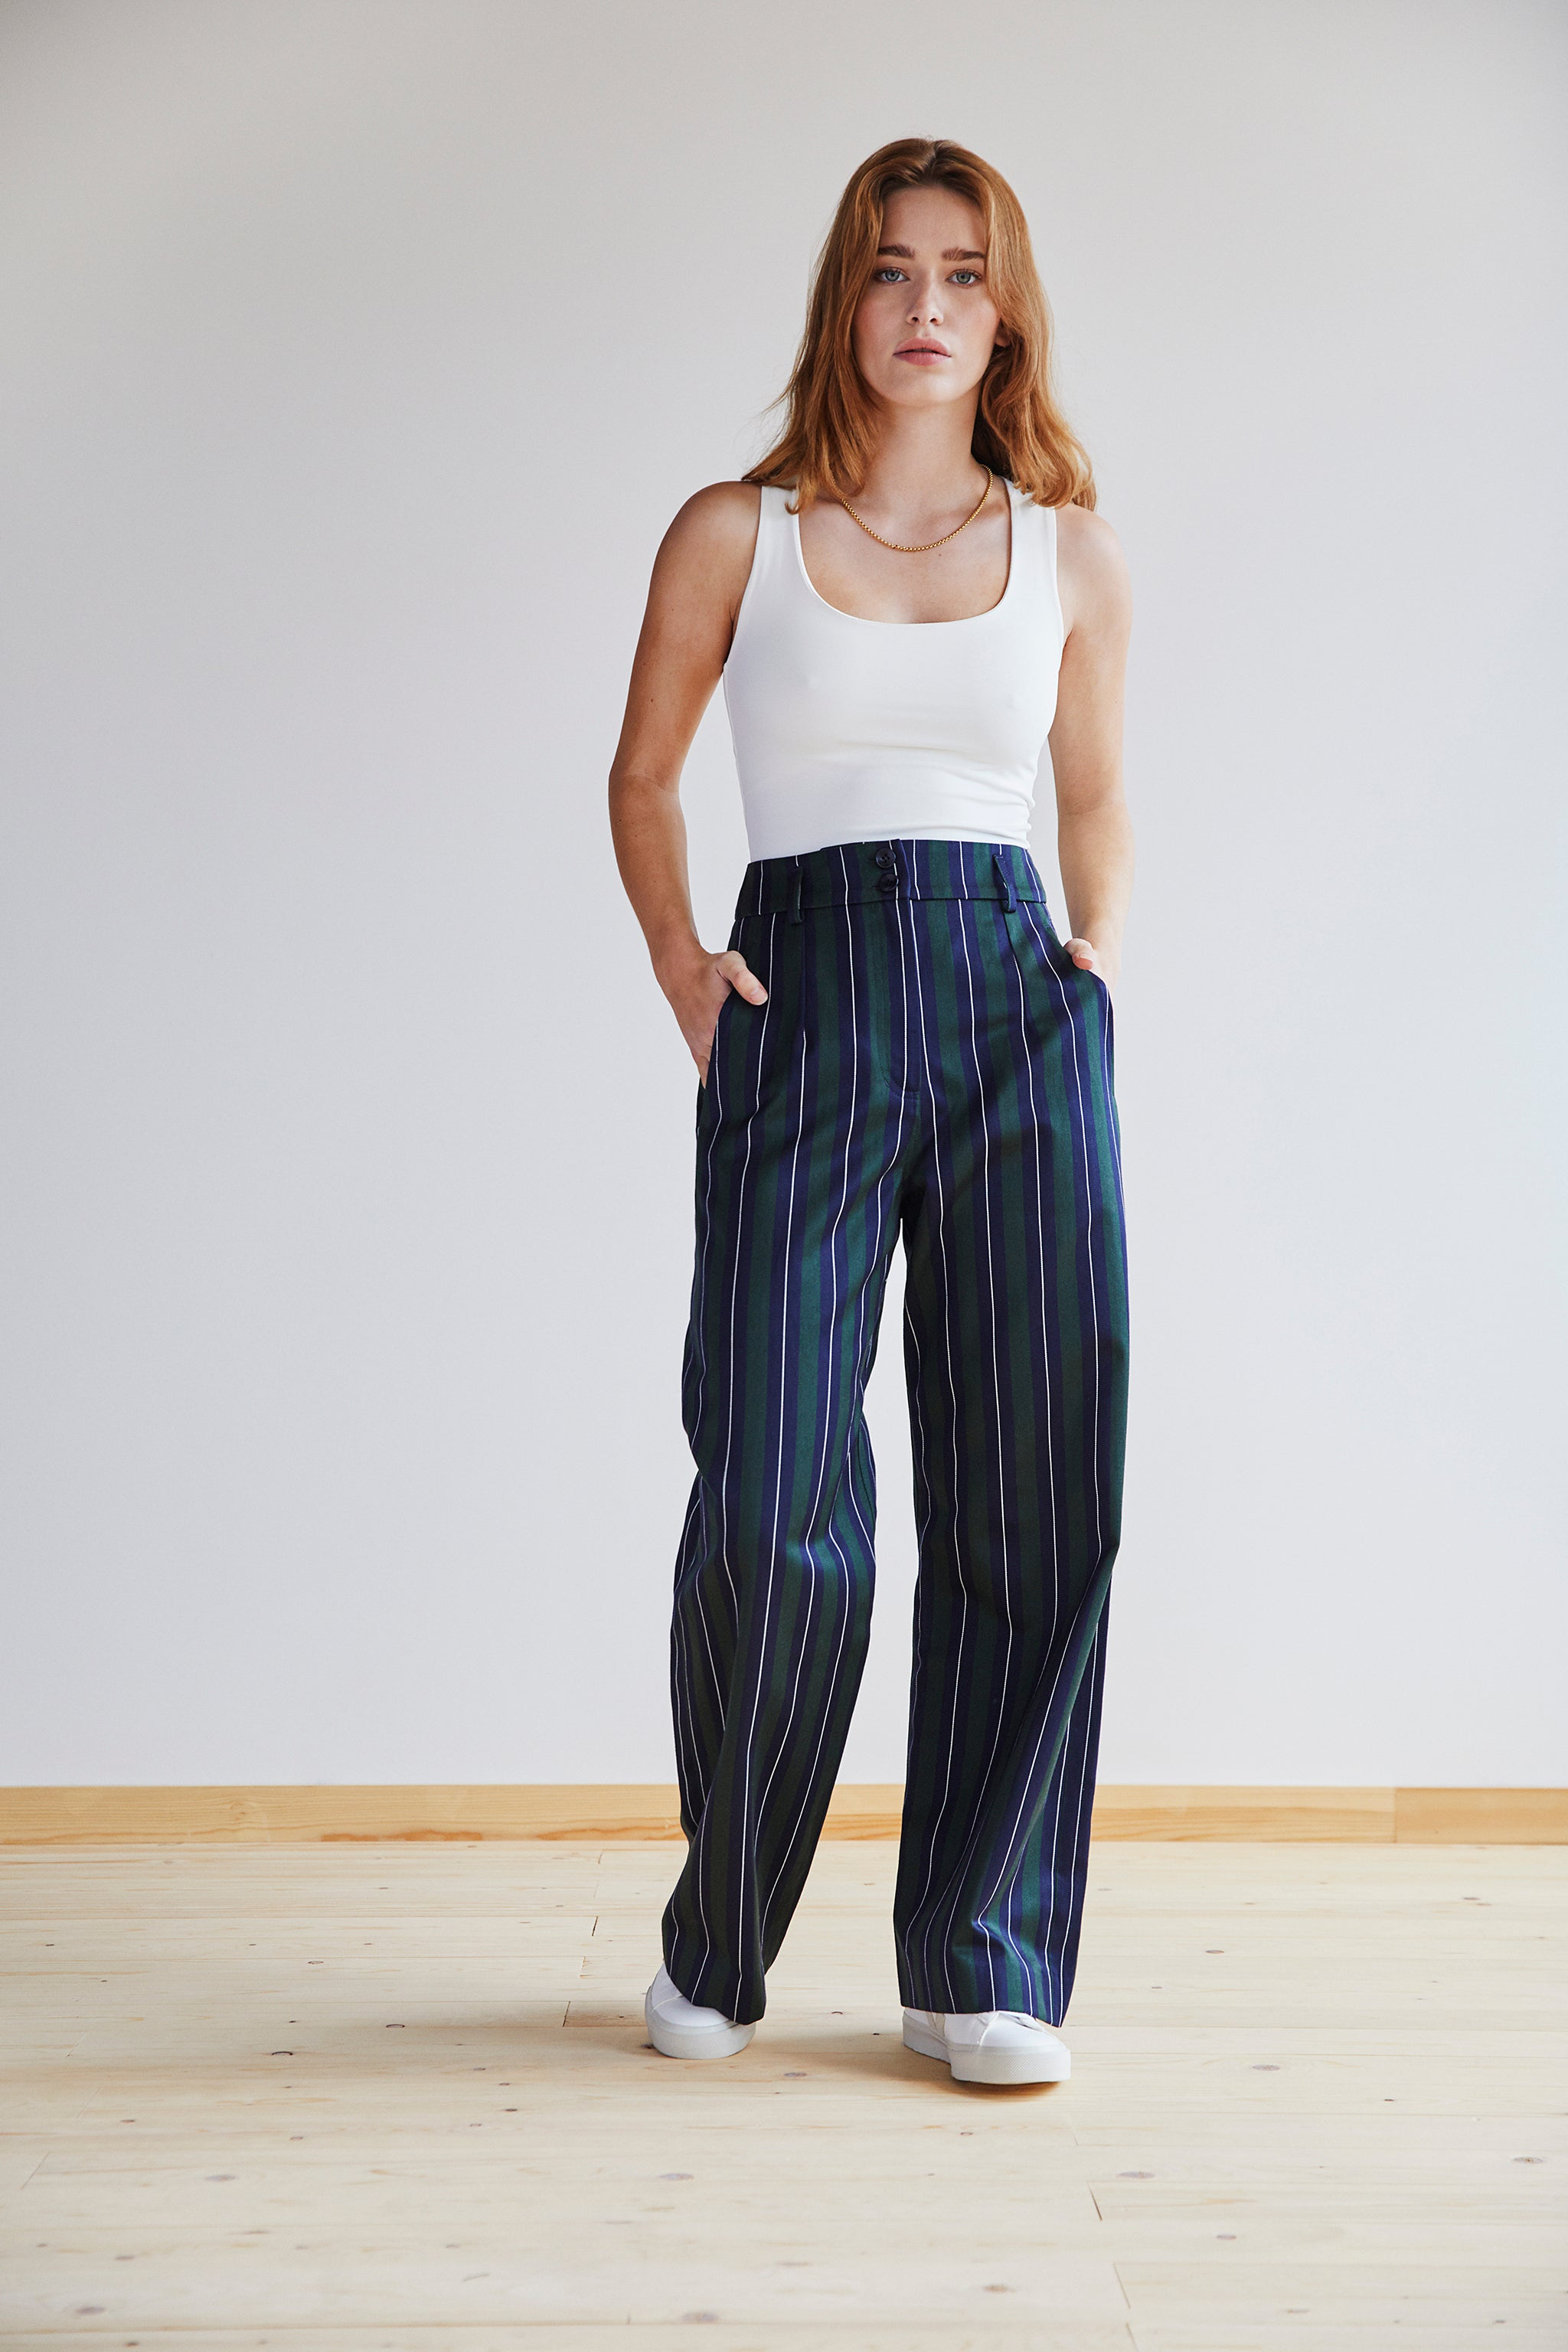 Jessie Trouser in Green, Navy and White Stripe - Pre Order